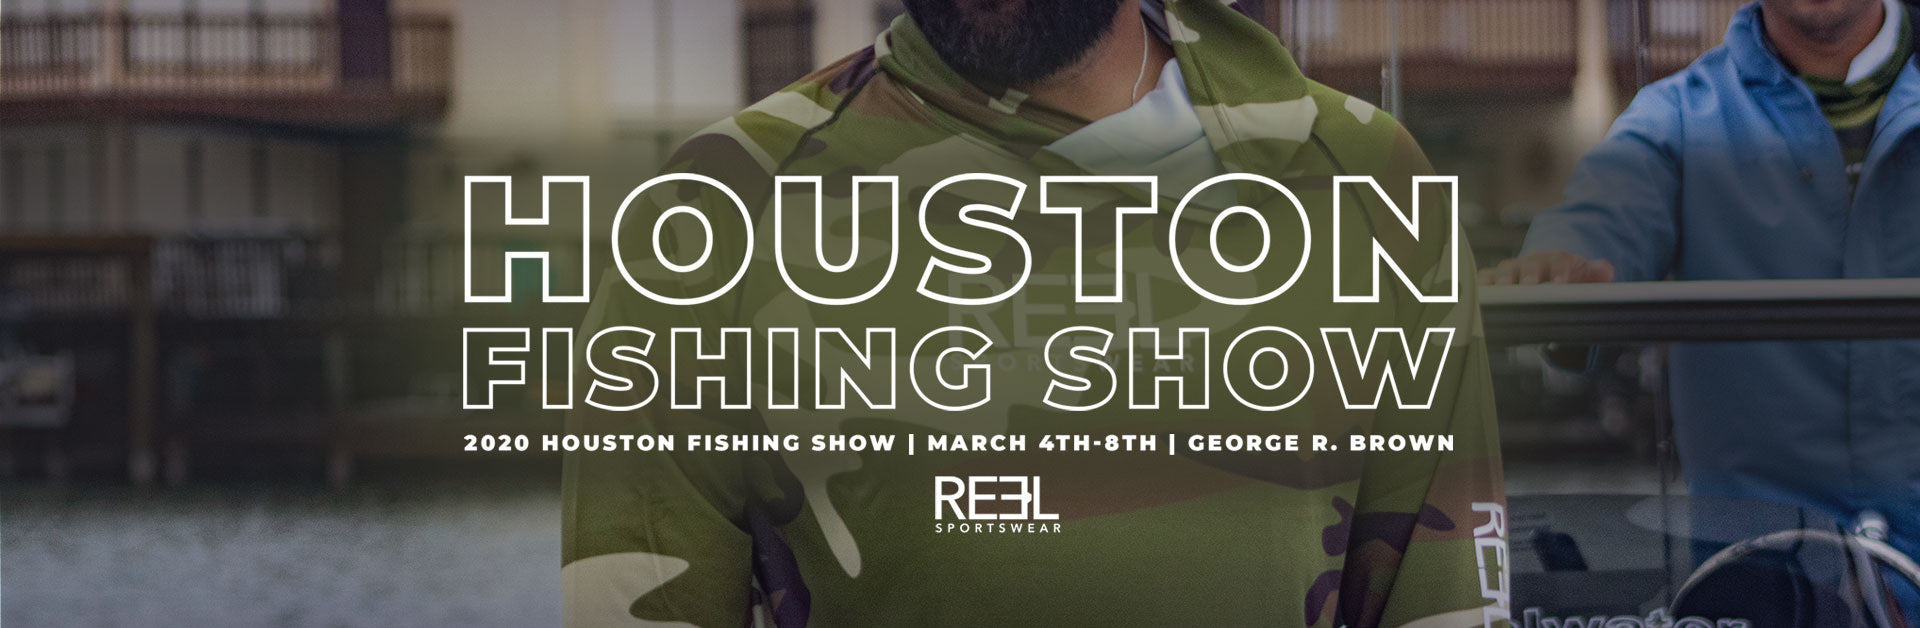 Houston Fishing Show